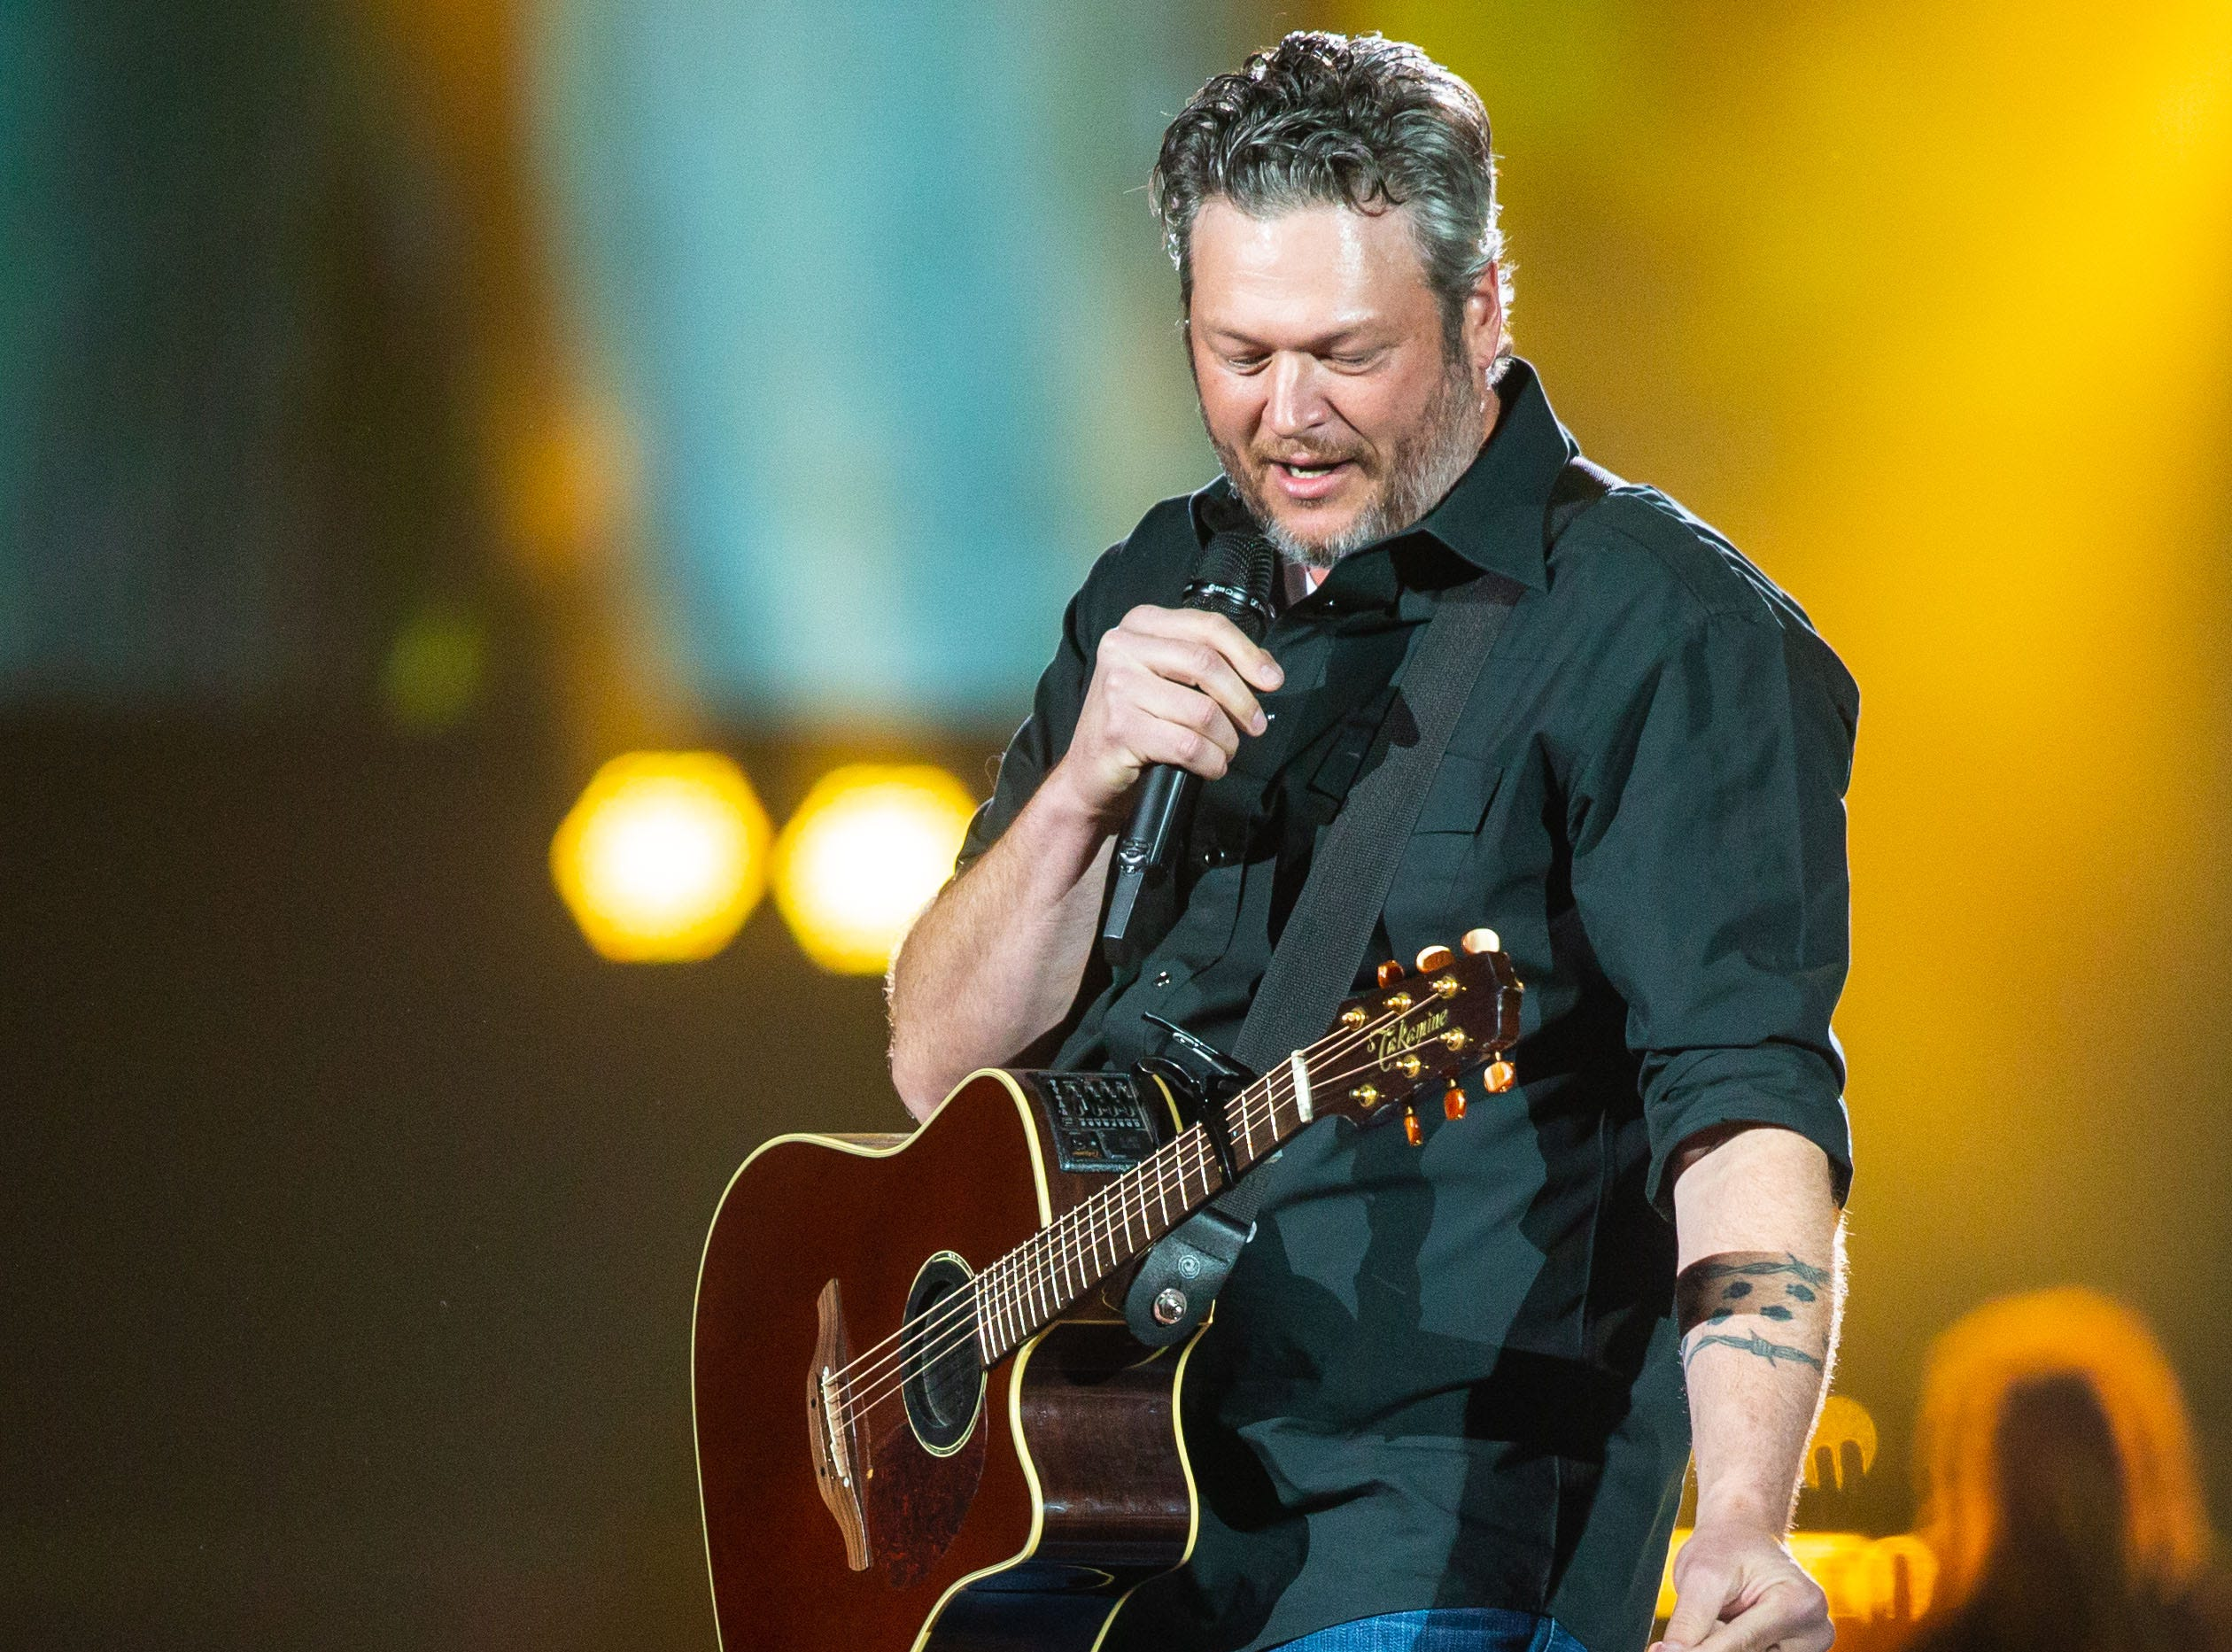 Blake Shelton performs at Wells Fargo Arena in Des Moines Thursday, March 14, 2019.